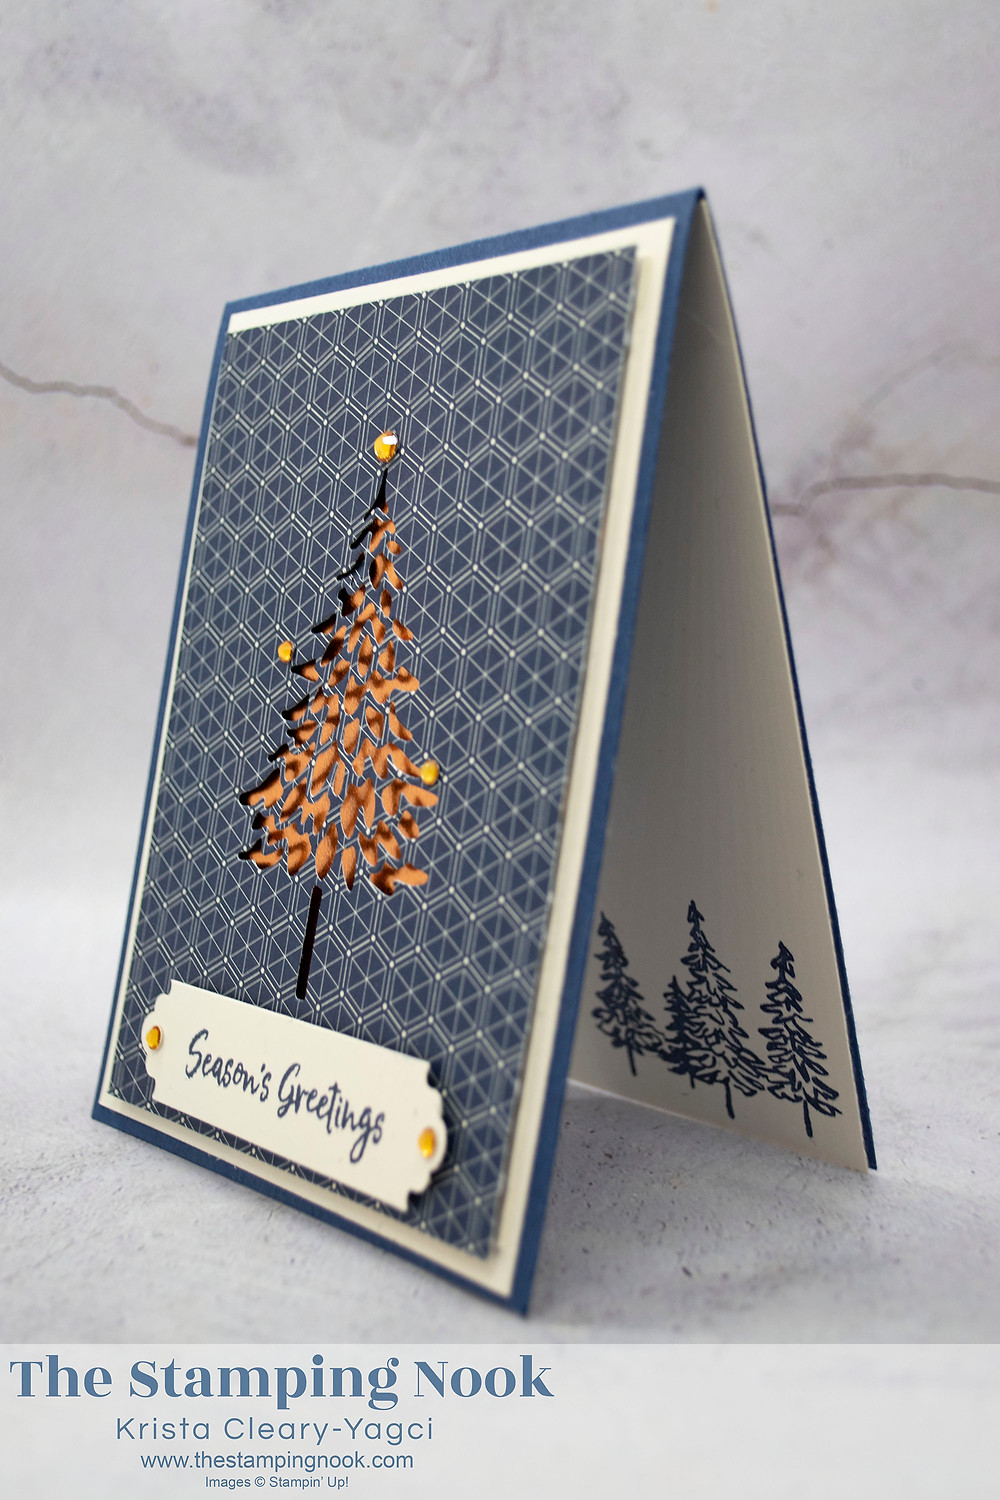 Stampin-Up-In-the-Pines-Seasons-Greetings-Christmas-Card-Krista-Cleary-Yagci-The-Stamping-Nook-2